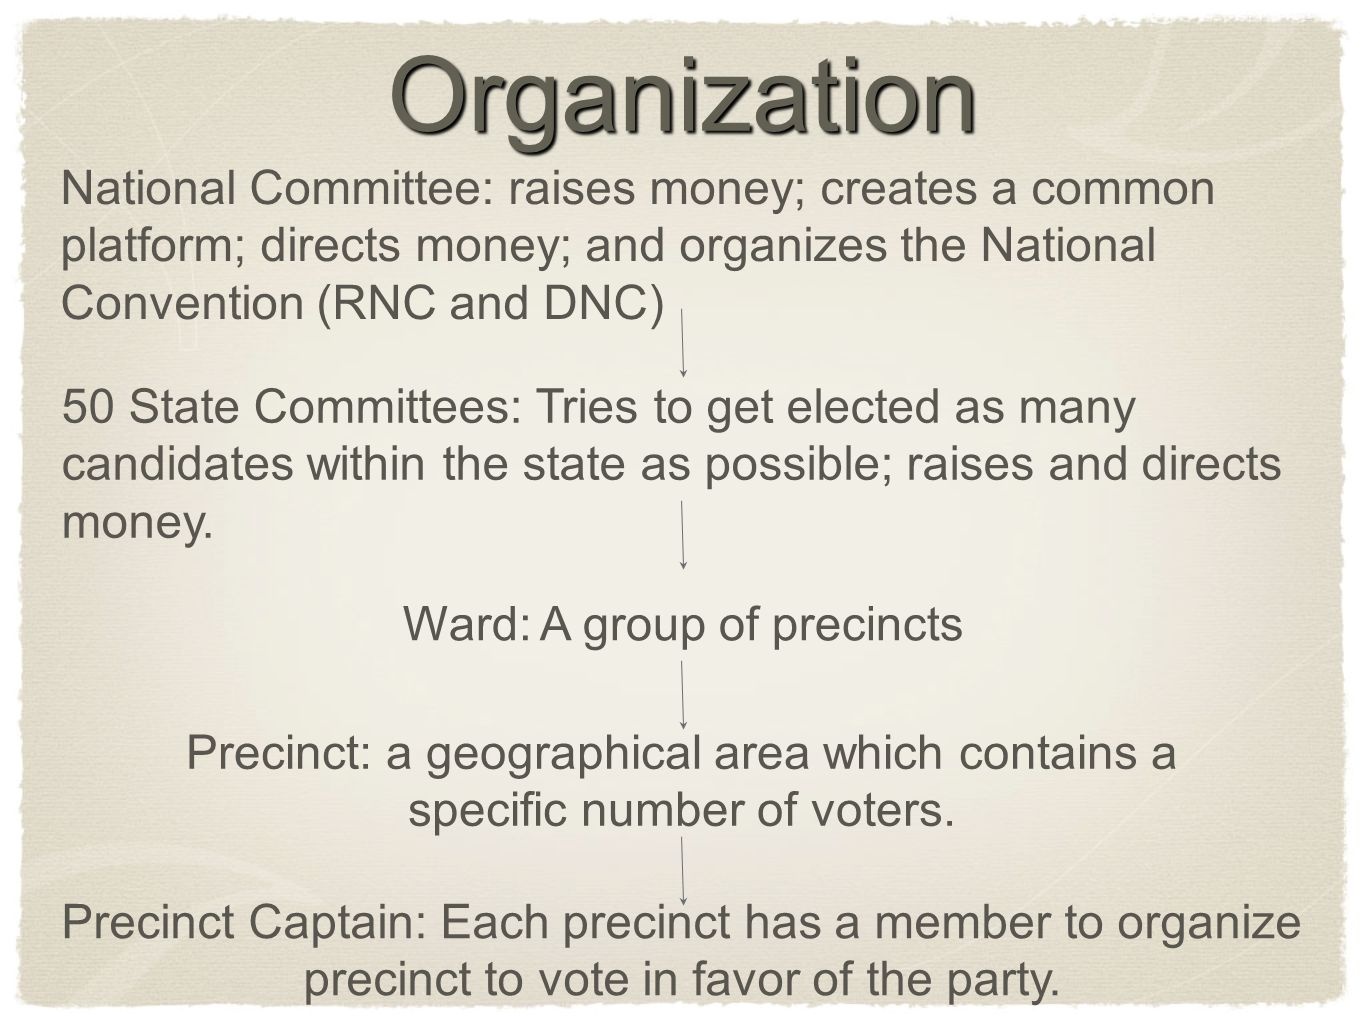 Organization National Committee: raises money; creates a common platform; directs money; and organizes the National Convention (RNC and DNC)